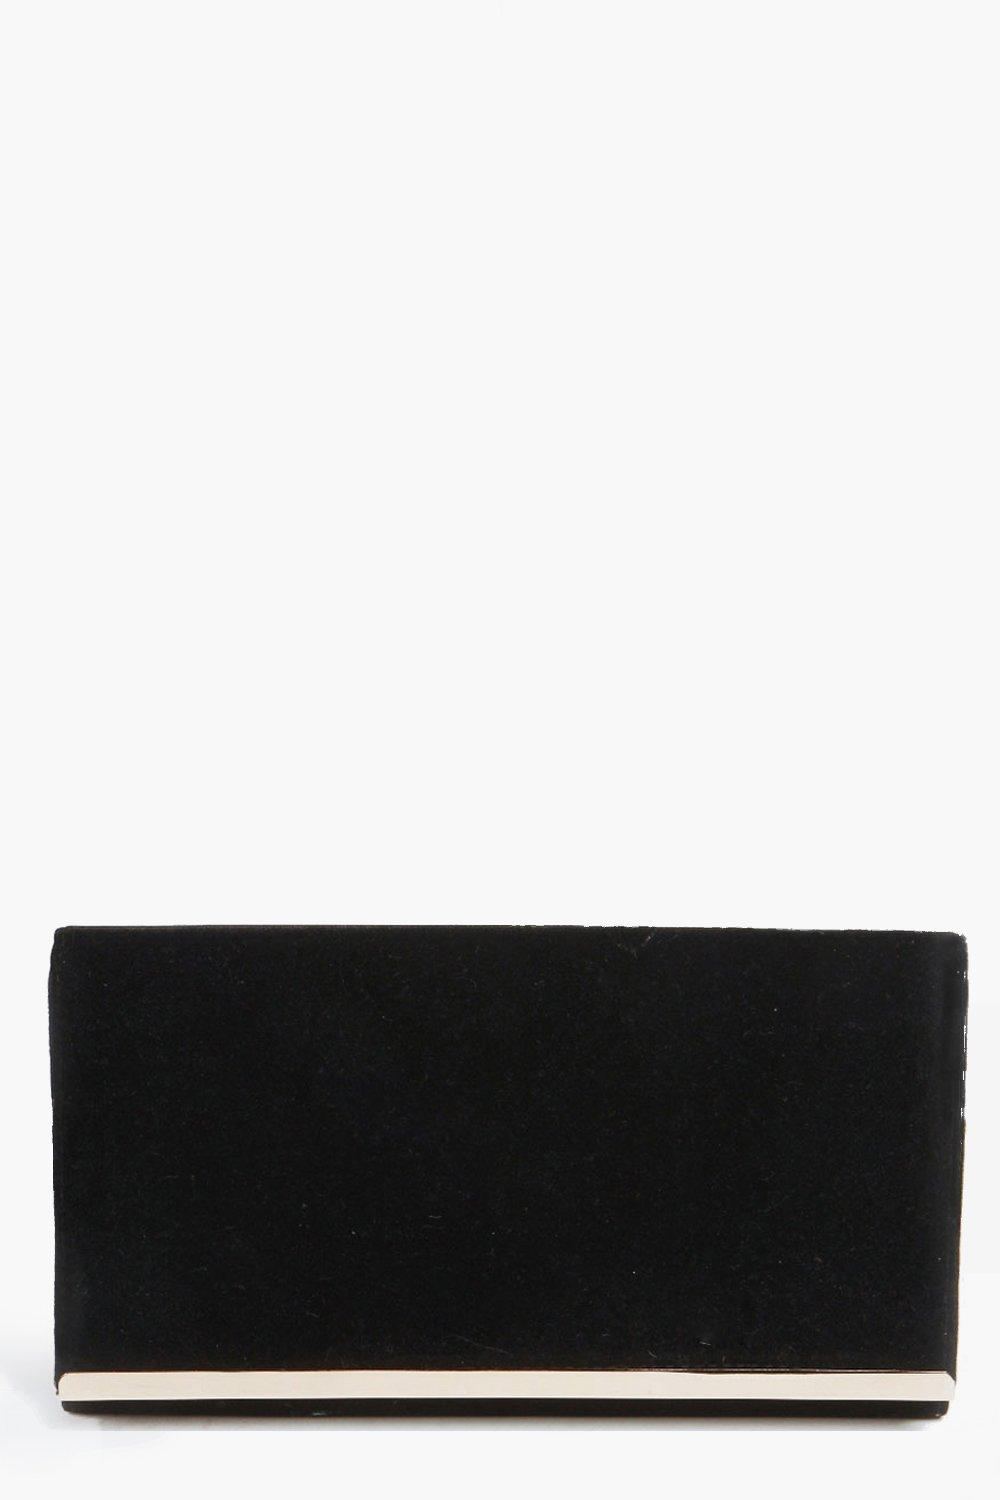 Louisa Rectangular Metal Trim Clutch